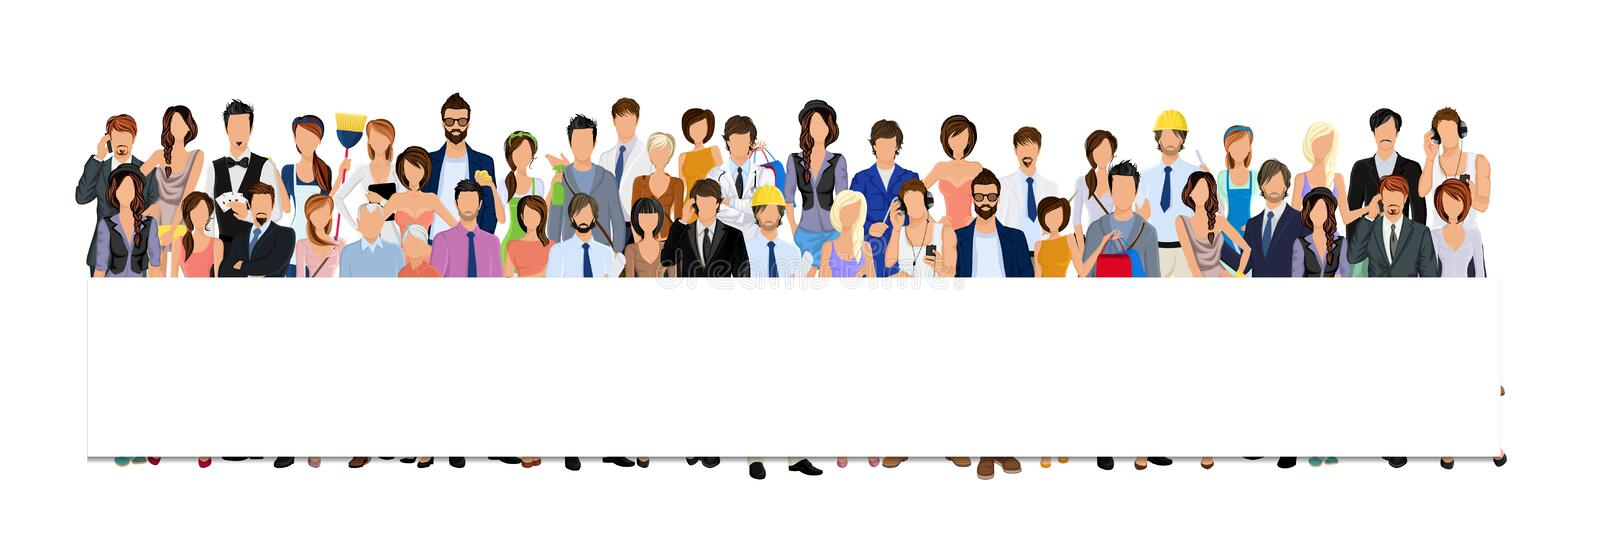 Group people banner. Large group crowd of people adult professionals paper horizontal banner vector illustration stock illustration